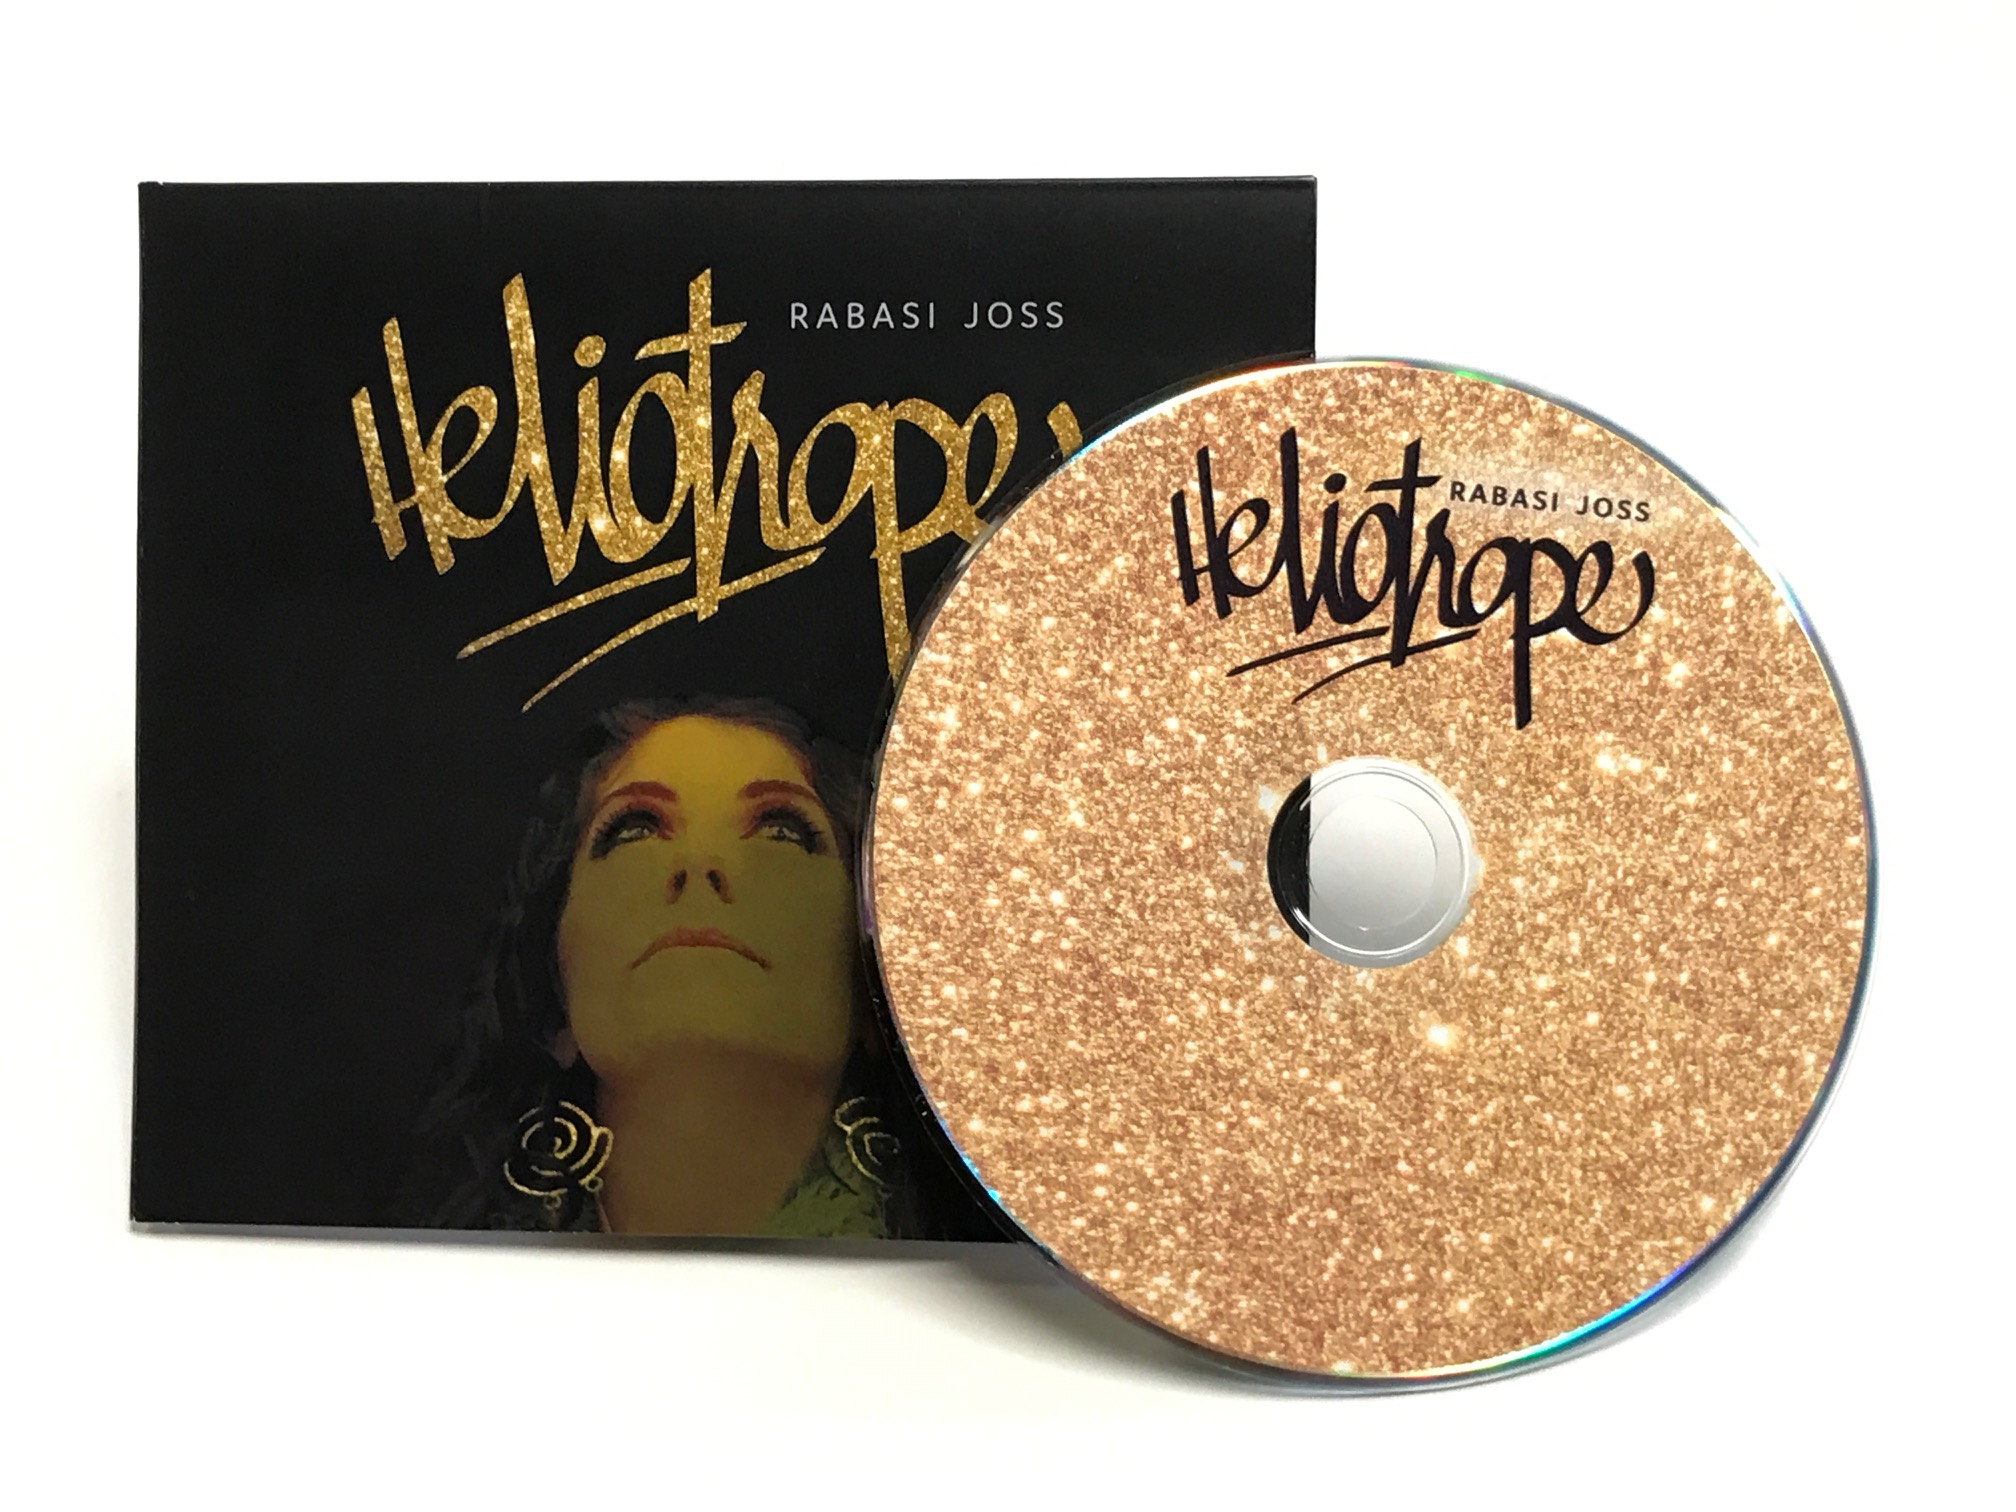 CD with disc.JPG